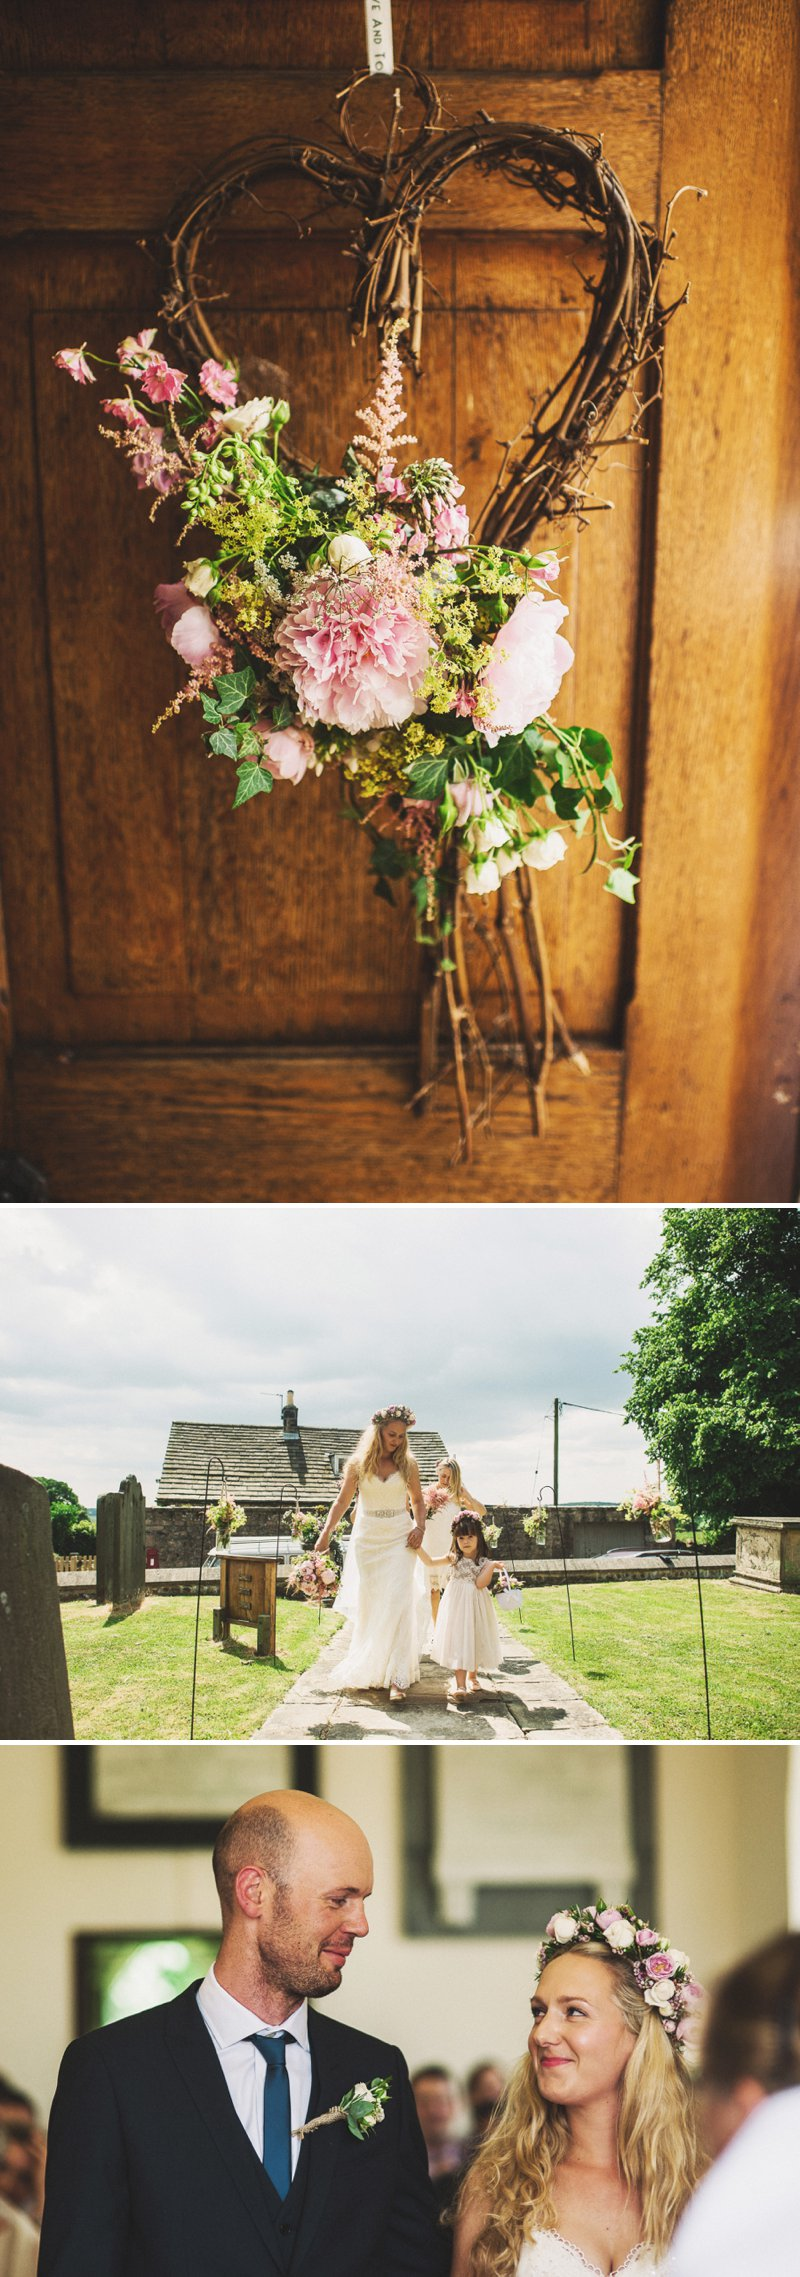 Rustic Marquee Wedding At Mallard Grange In Yorkshire With A Dusty Pink, Cream And Grey Colour Scheme With Bride In Gown From Eternity Bridal With A Vintage VW Camper Van 2